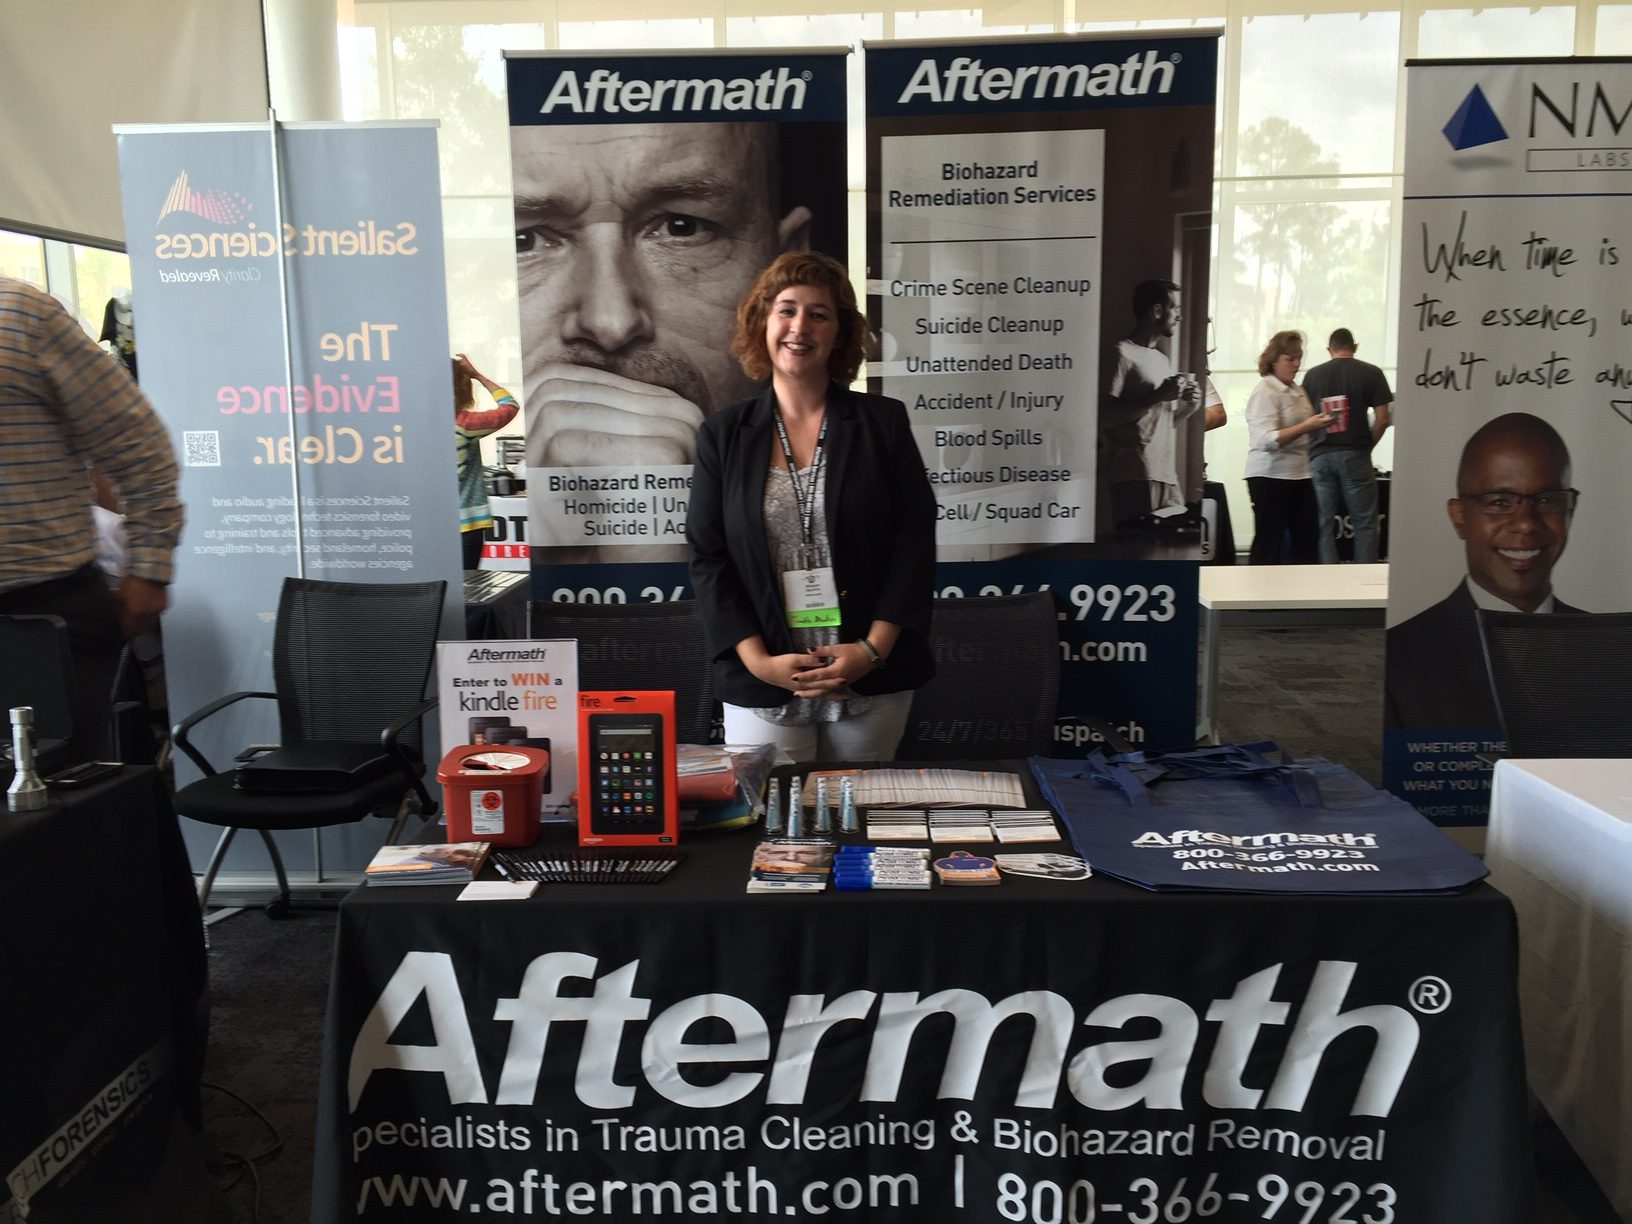 Aftermath Attends the North Carolina International Association for Identification Conference